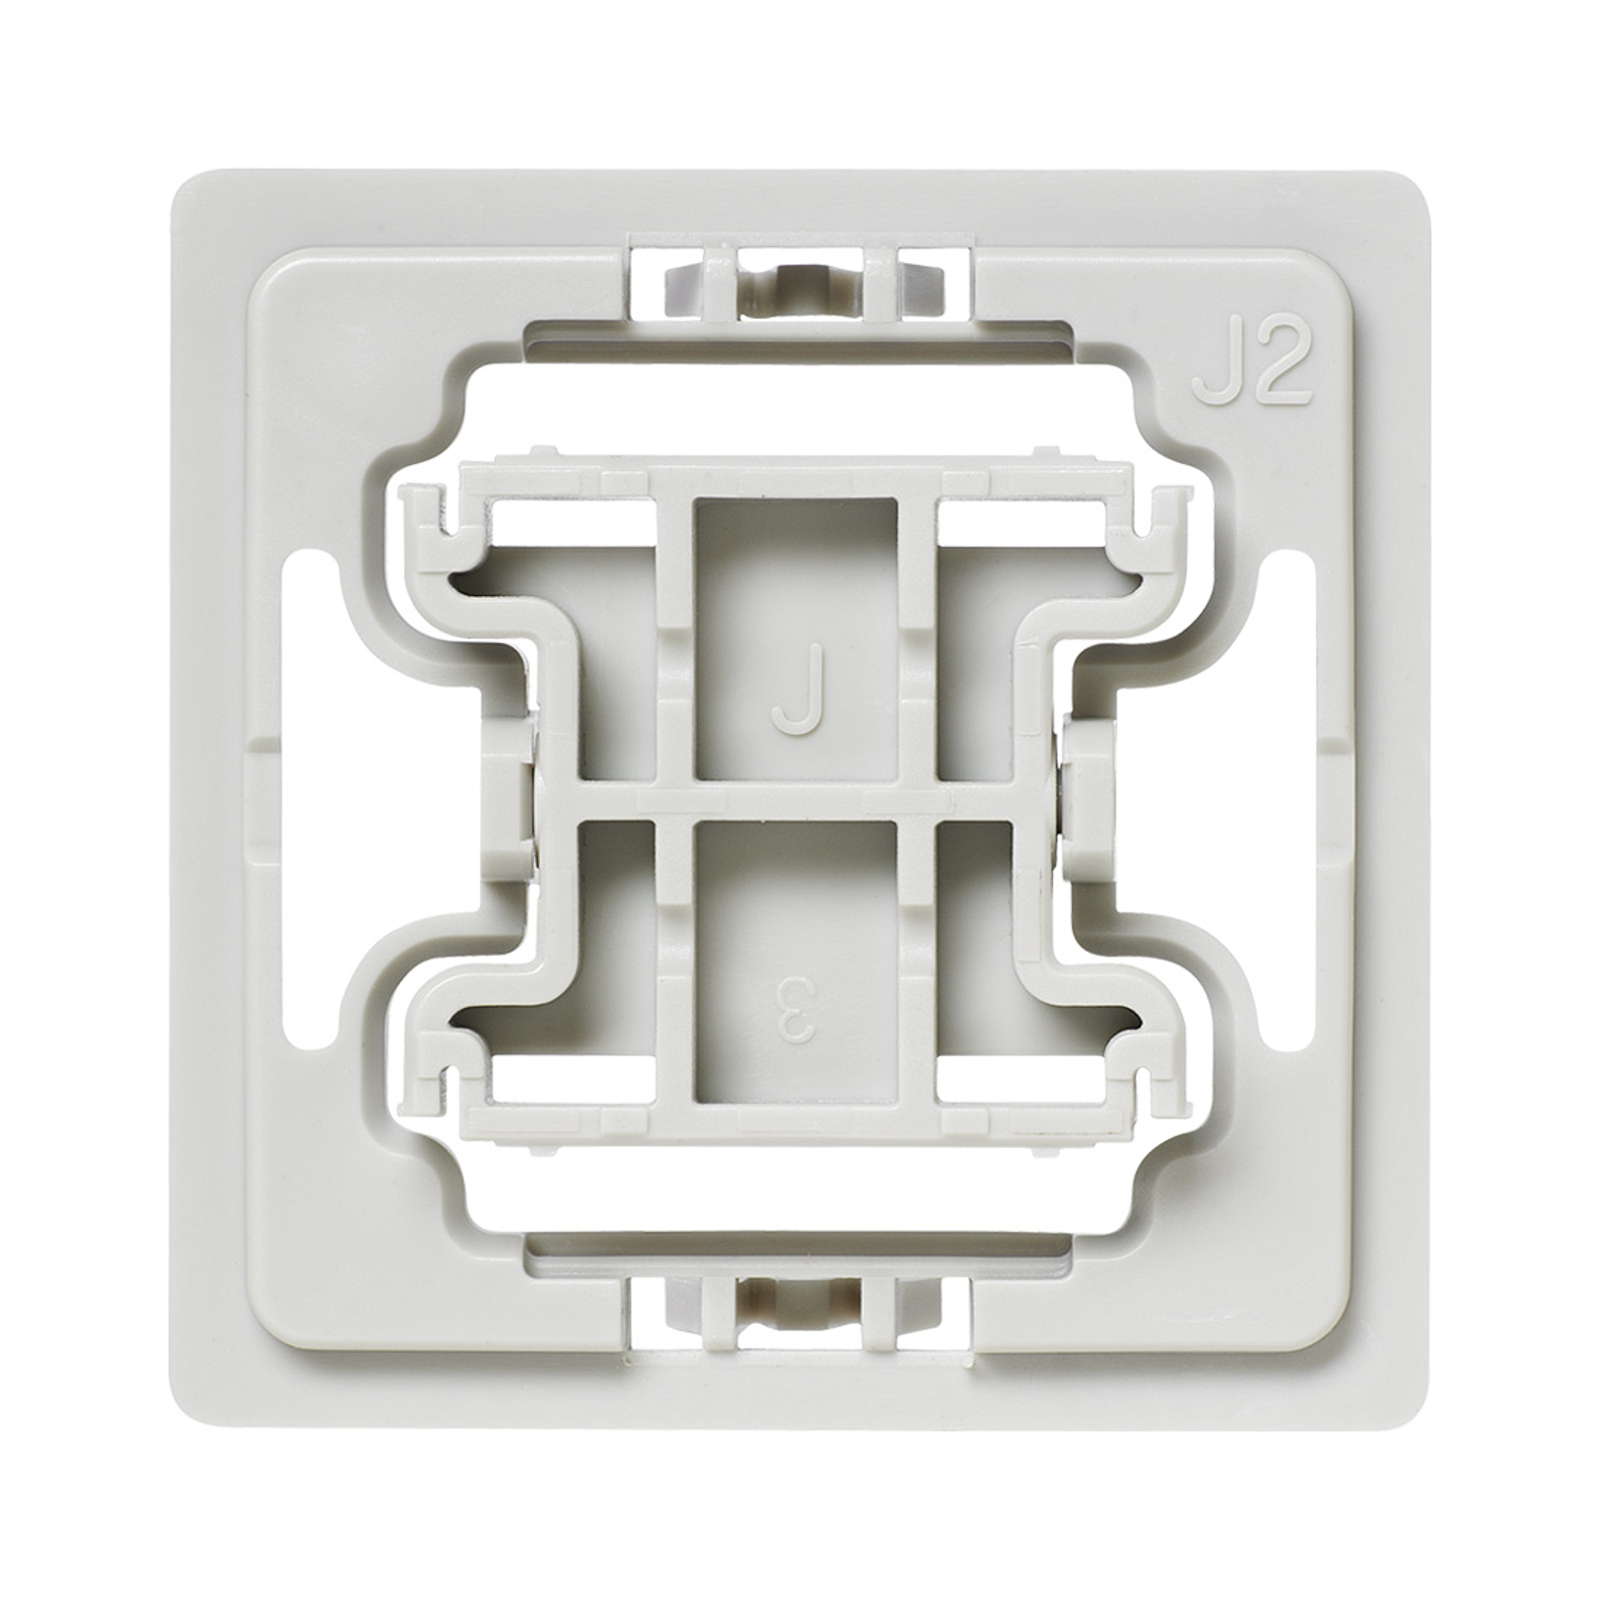 Homematic IP-adapter for Jung-bryter J2 20x